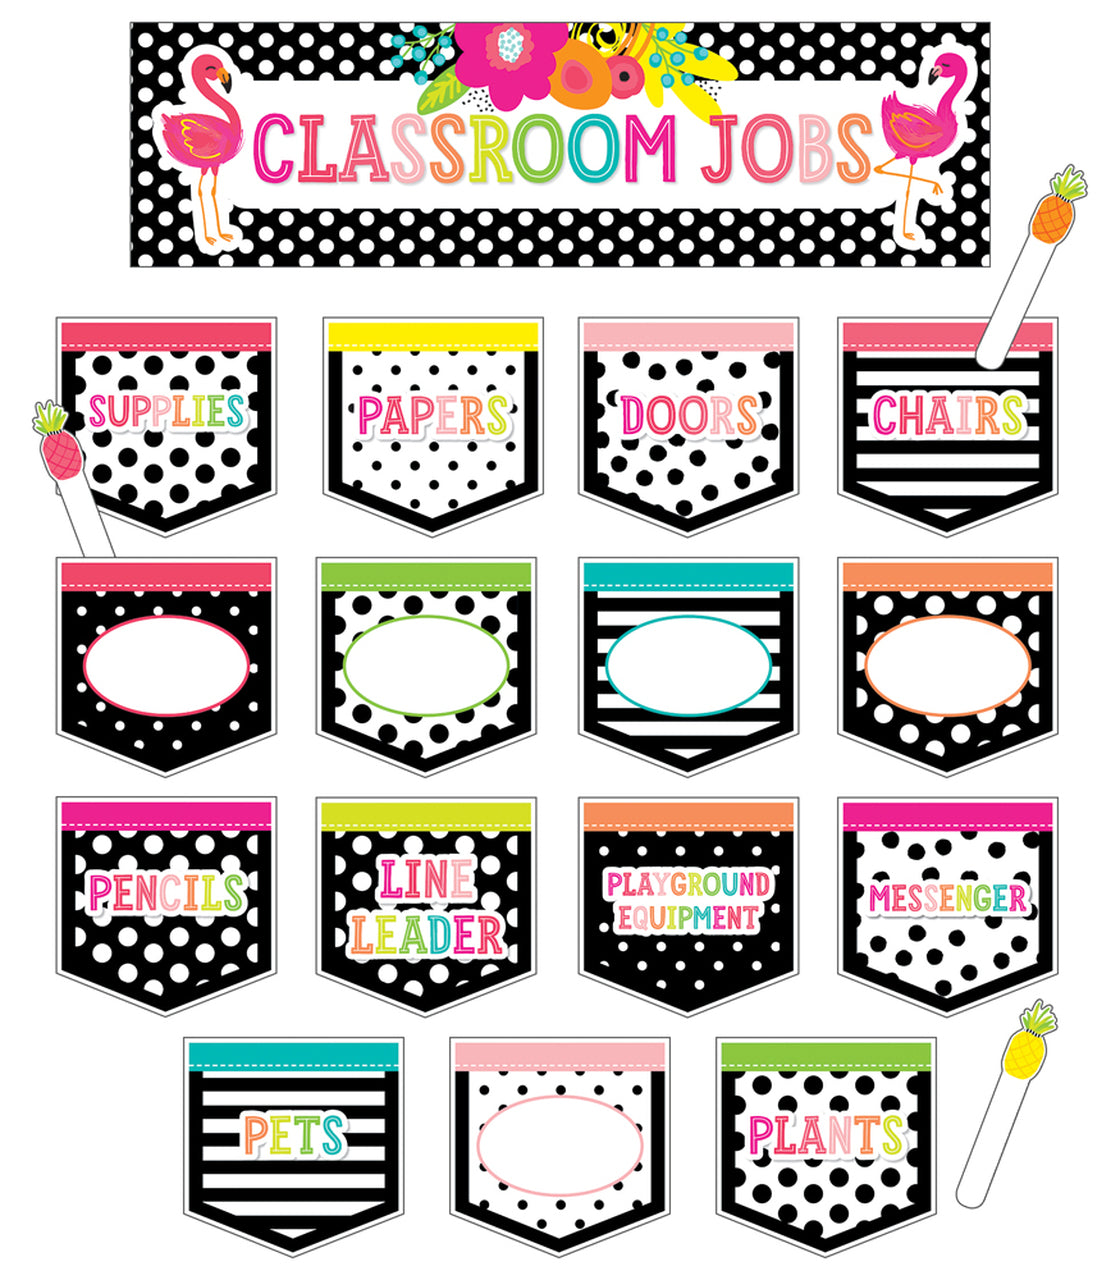 Carson Dellosa Simply Stylish Tropical Classroom Jobs Mini Bulletin Board Set (110465)